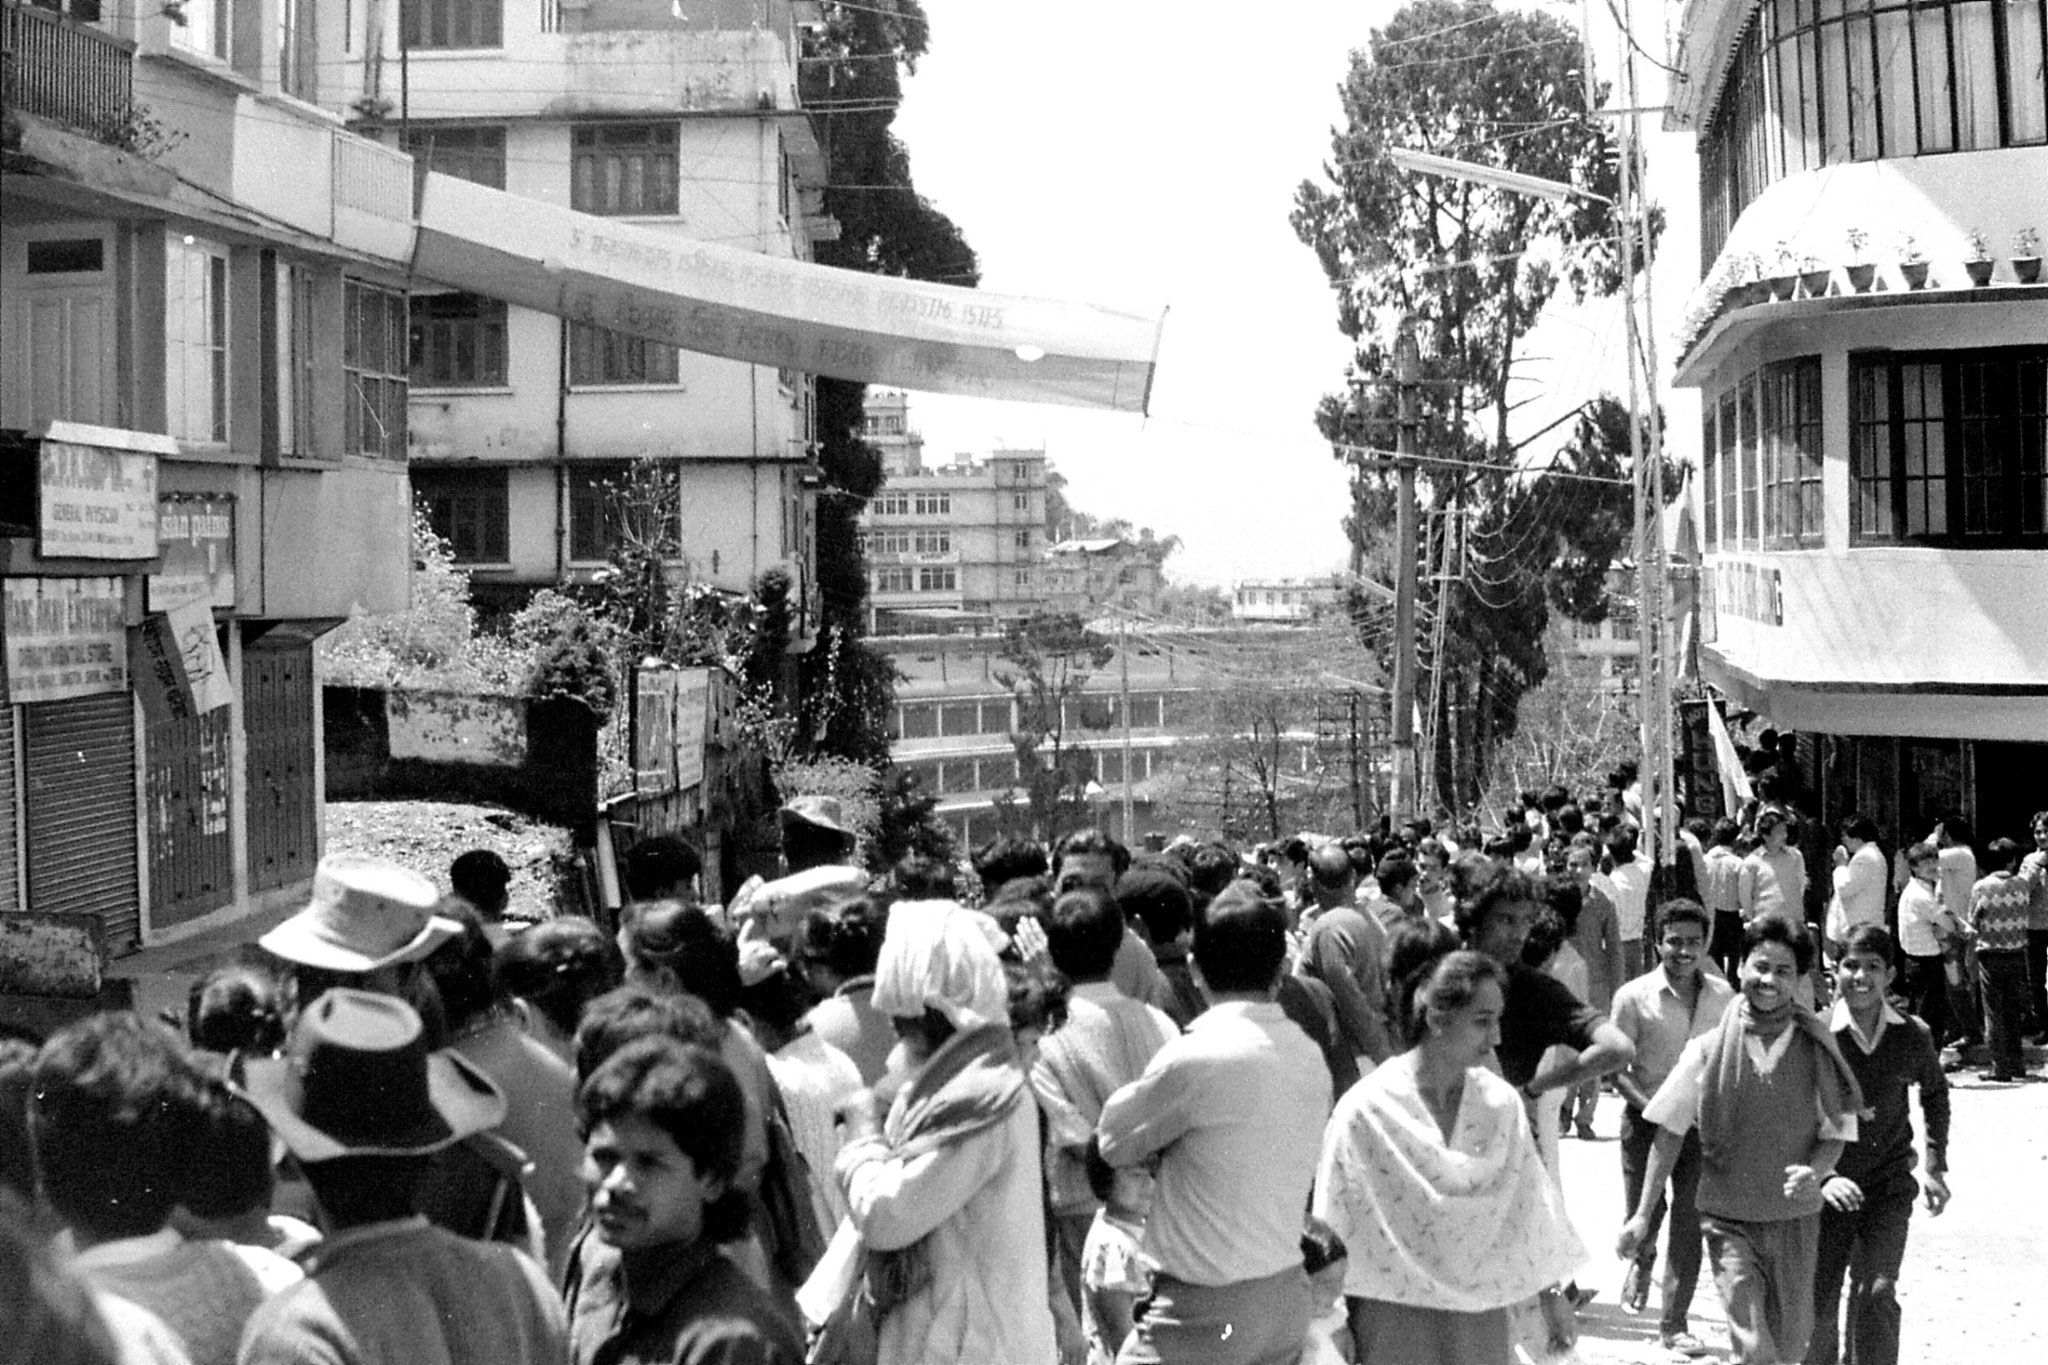 22/4/1990: 23: Gangtok crowds waiting to see V P Singh